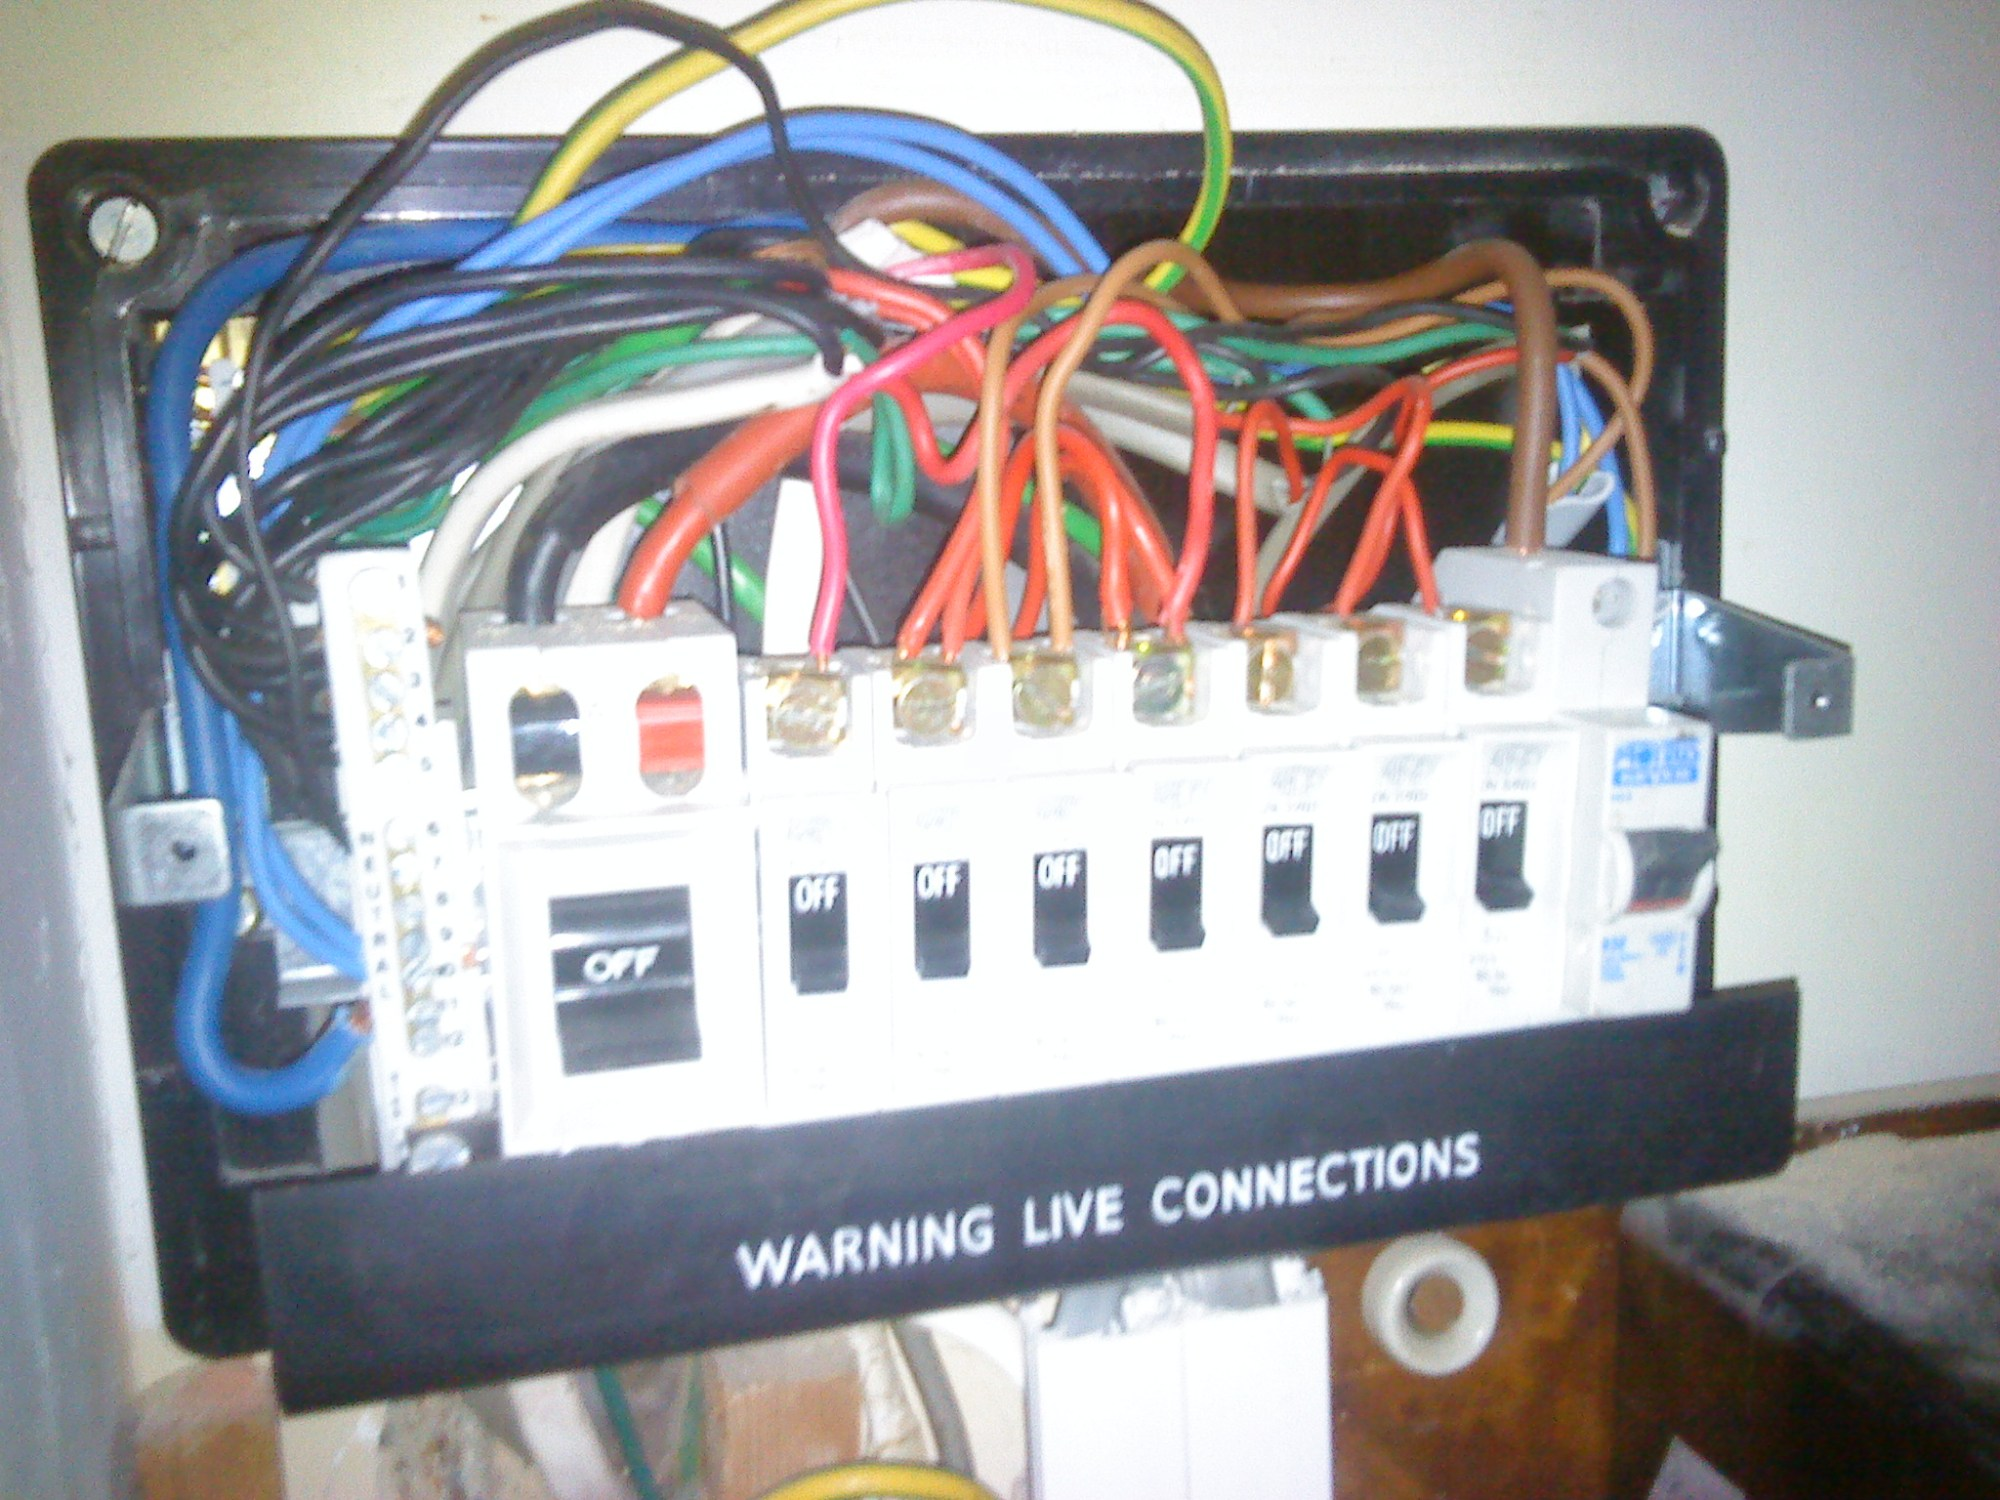 hight resolution of typical fuse box with no rcd protection